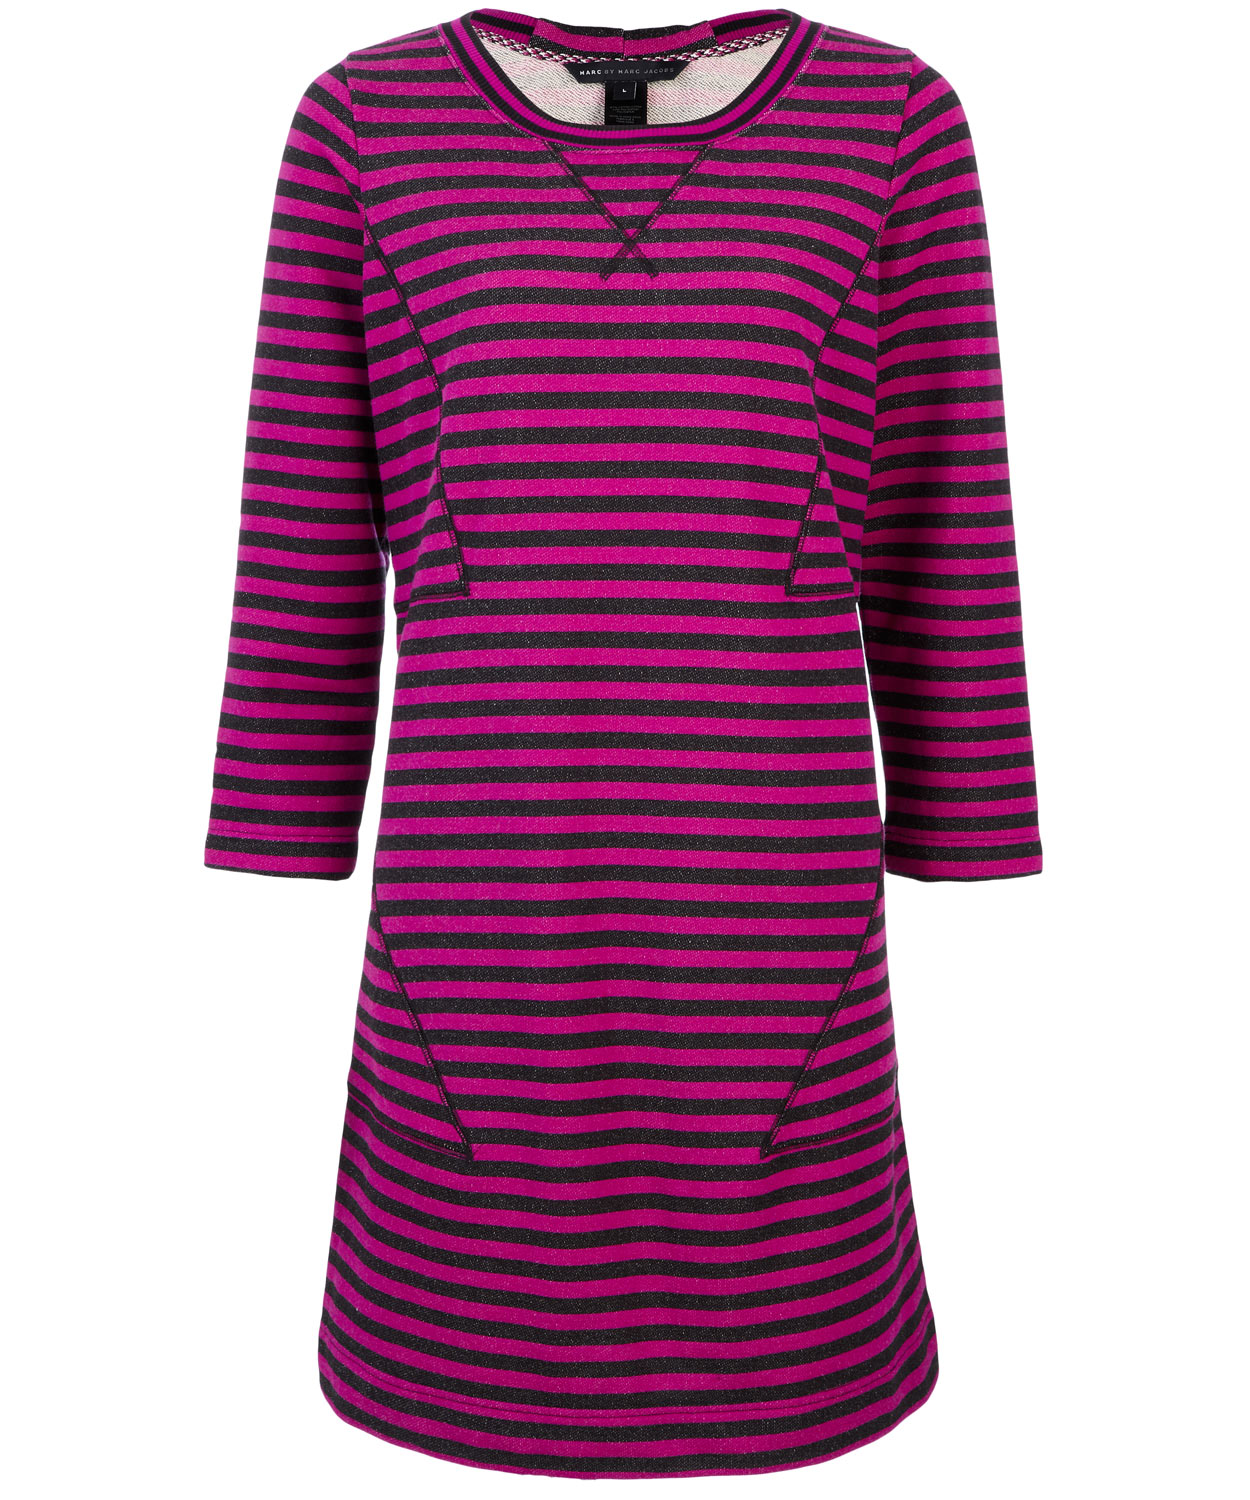 Marc by marc jacobs Pink and Black Ben Stripe Dress in Purple | Lyst